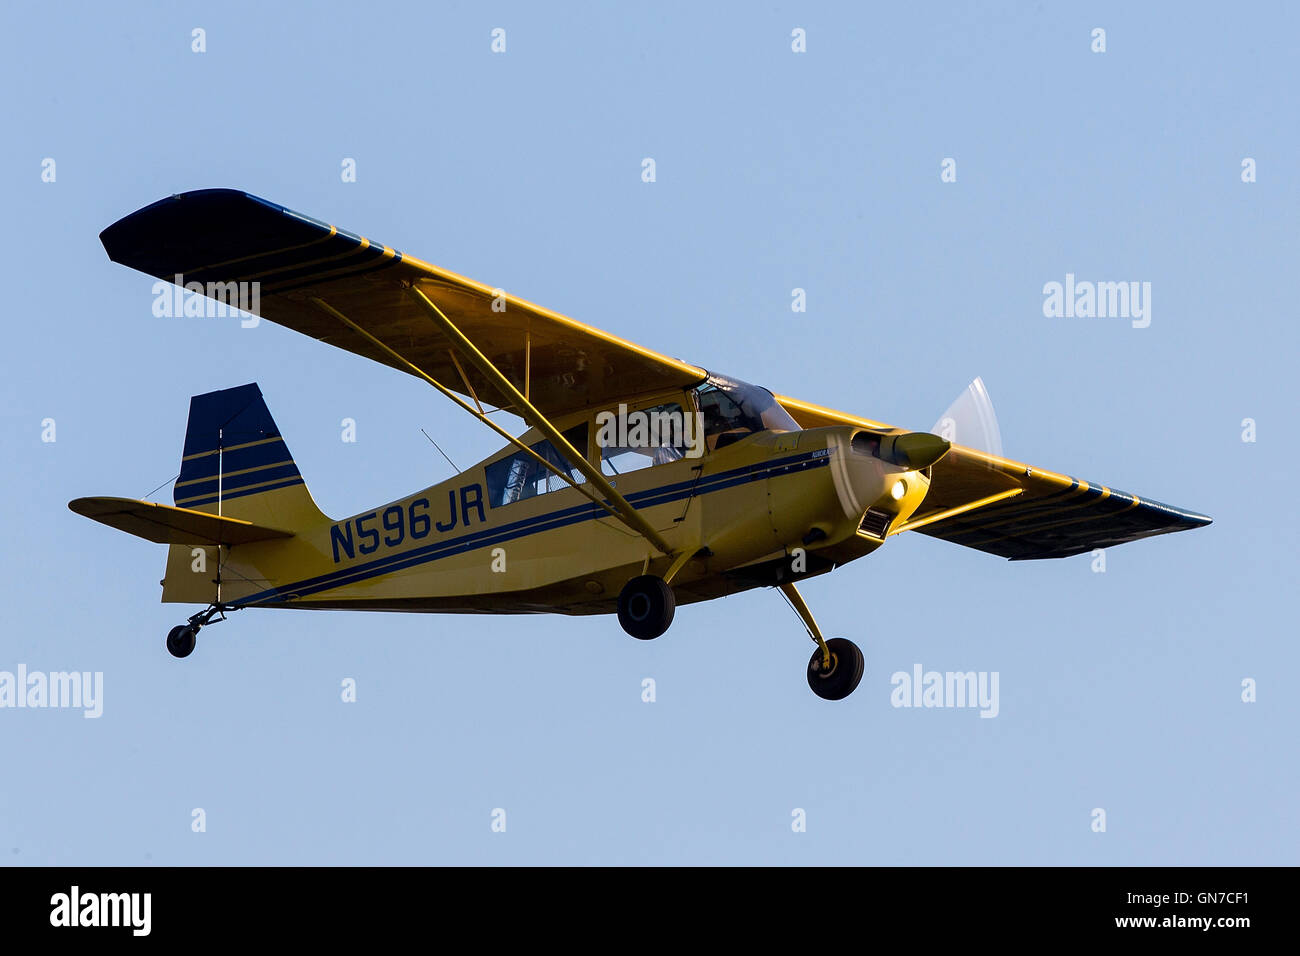 American Champion Citabria Aurora 7ECA (N596JR) lands at Palo Alto Airport, Palo Alto, California, United States - Stock Image